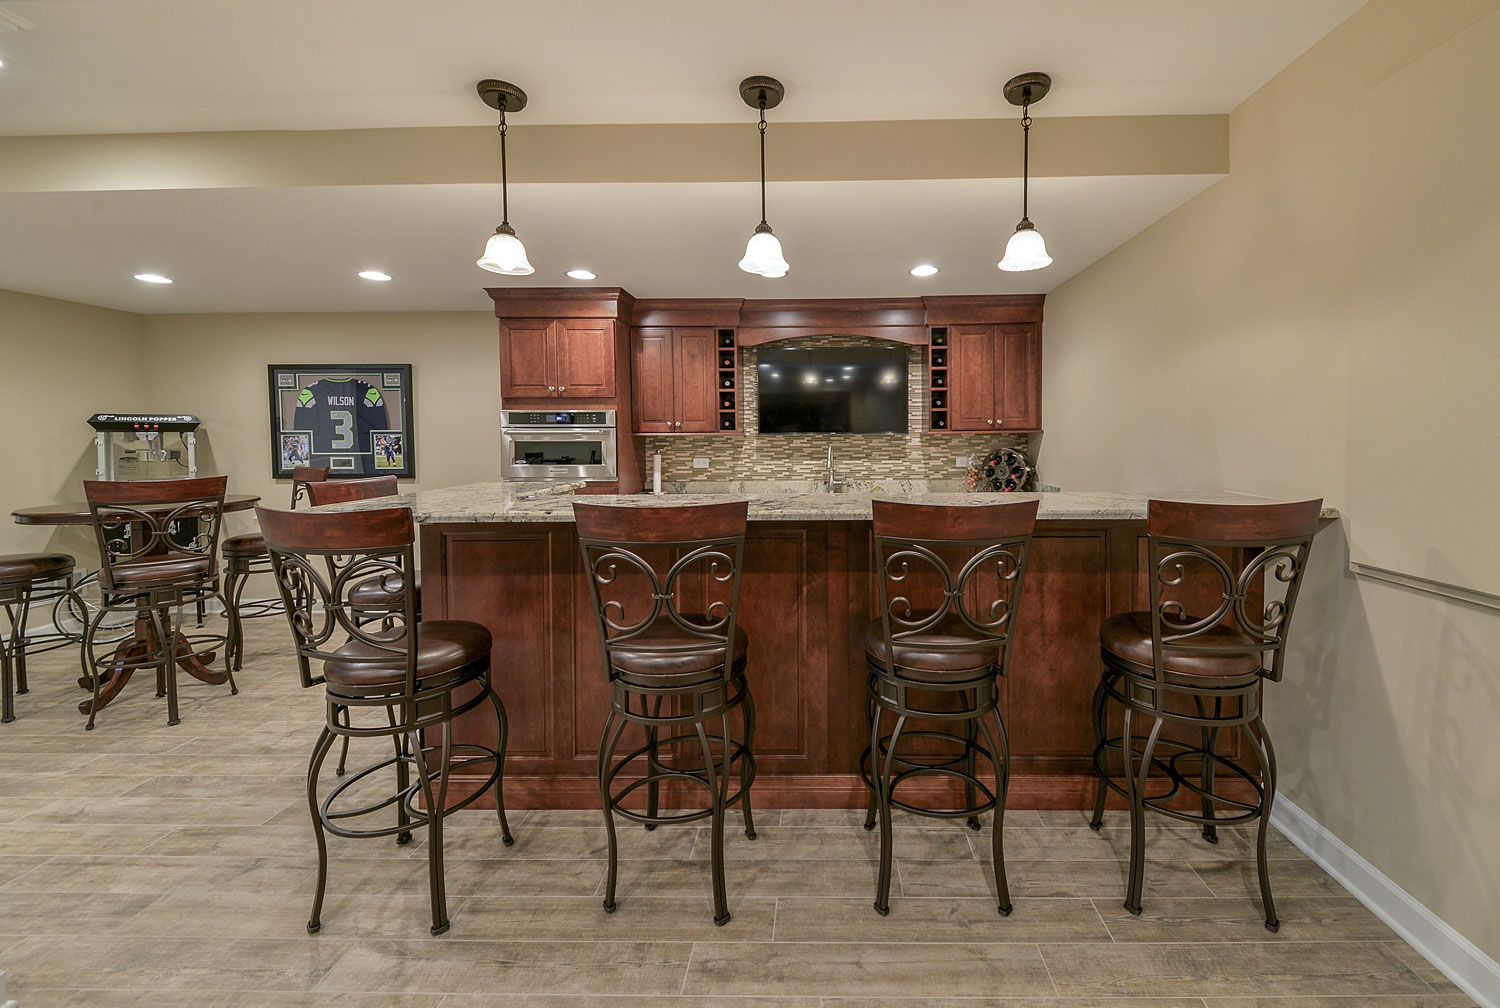 Eric Amp Mariam S Basement Pictures Home Remodeling